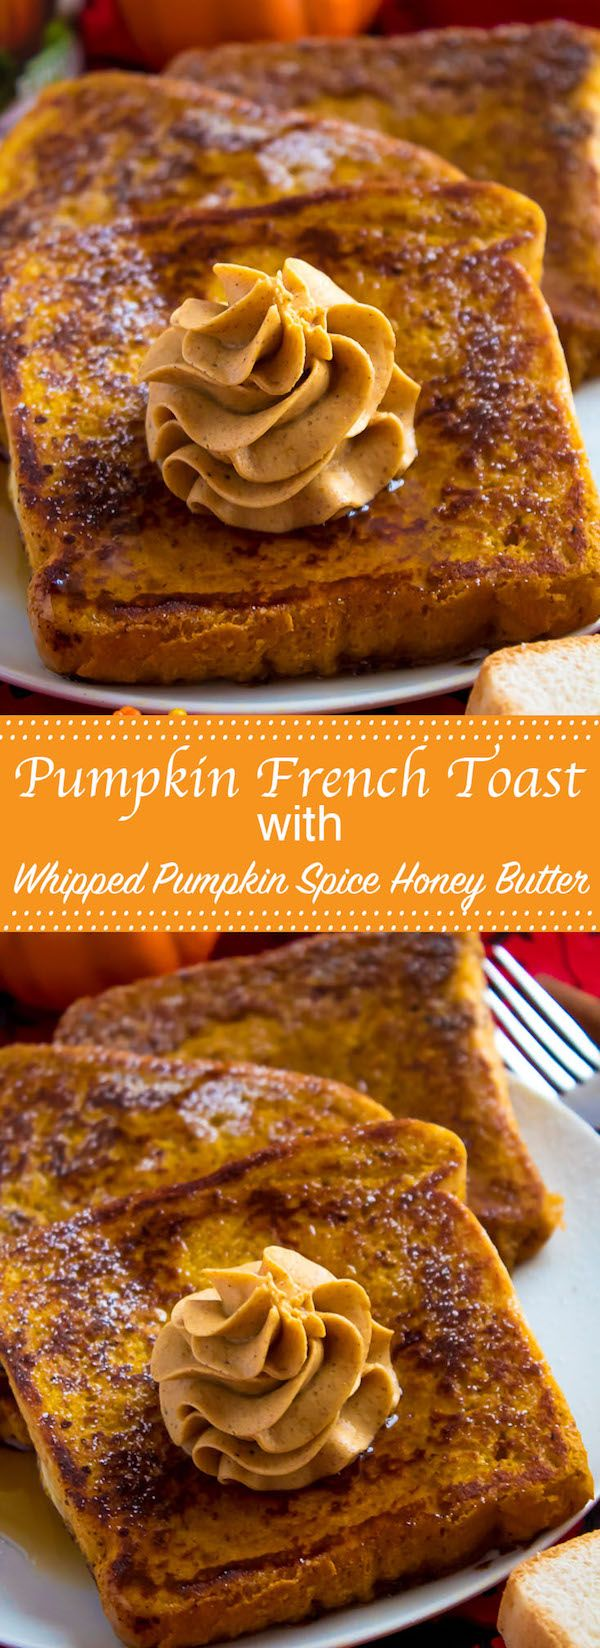 Photo of Pumpkin French Toast with Whipped Pumpkin Spice Honey Butter